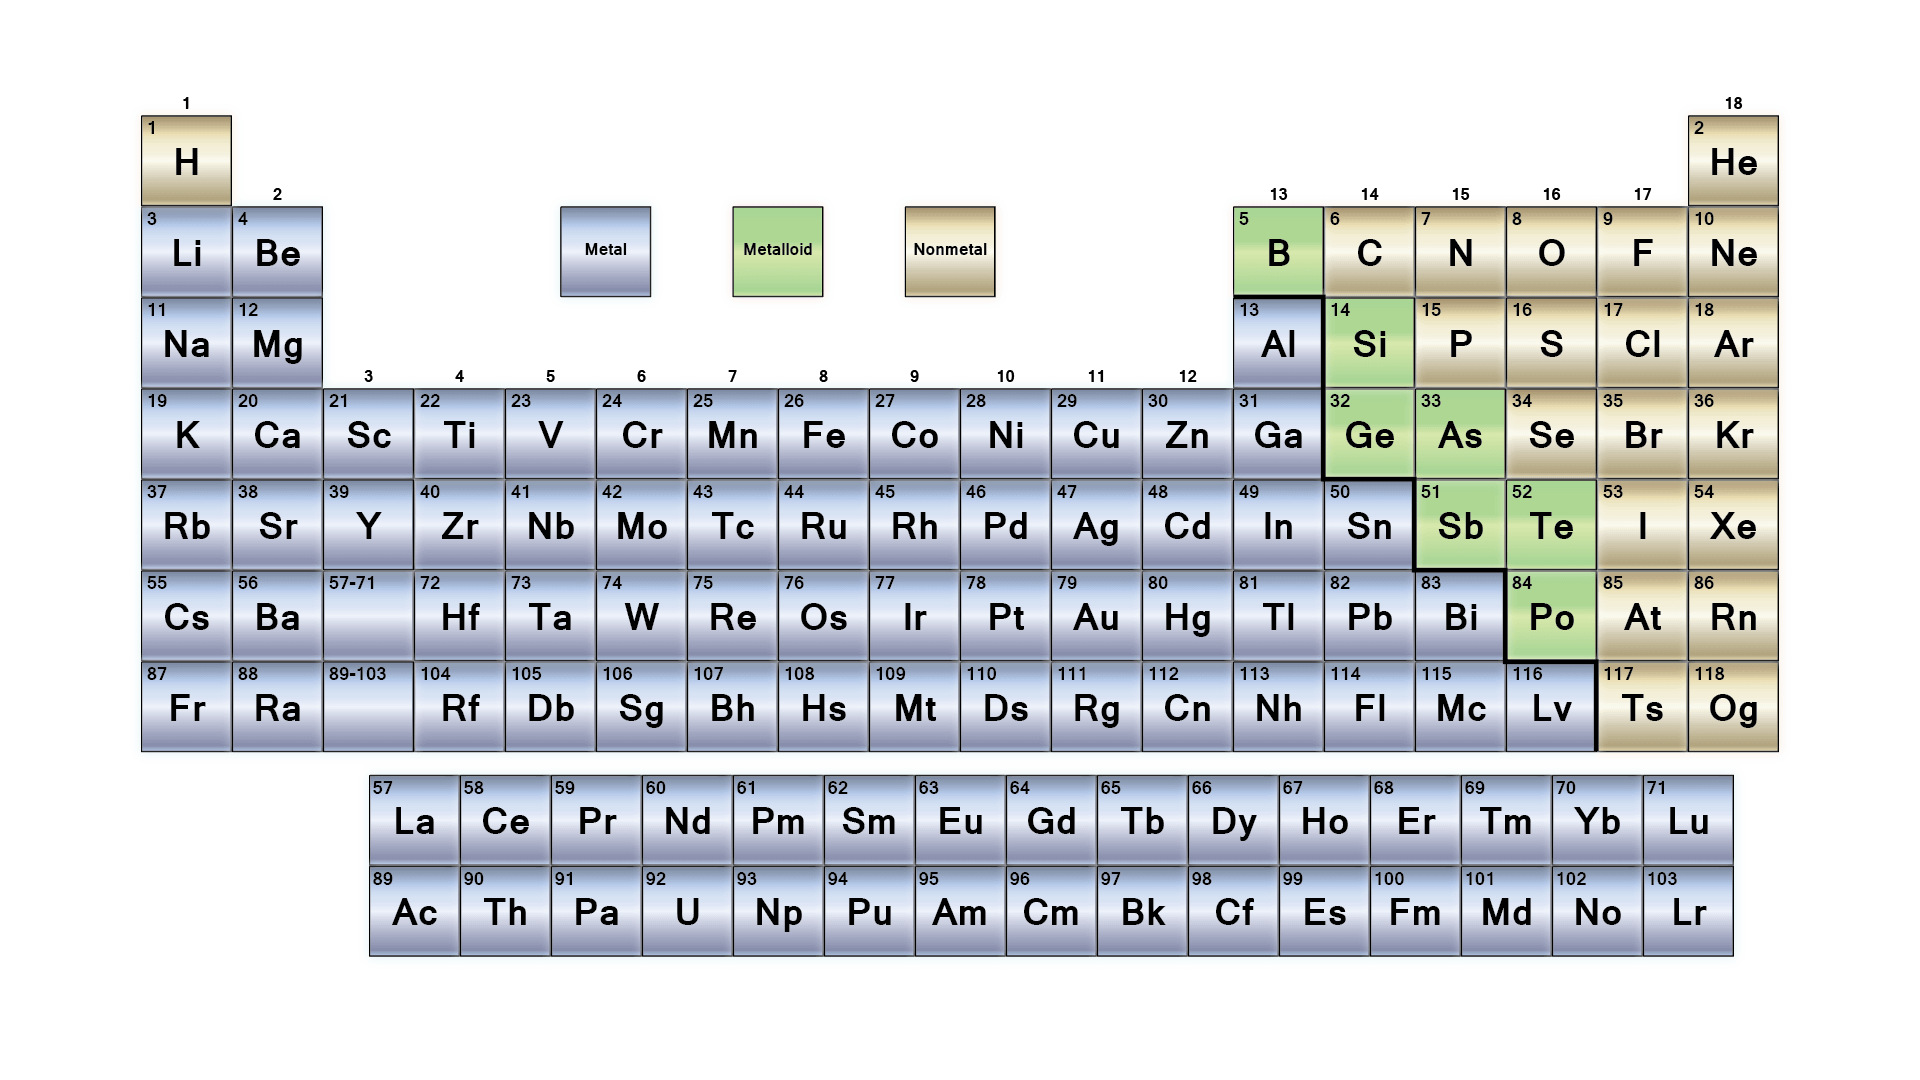 Lustre Moderne Transparent Metals Metalloids And Nonmetals Element Classification